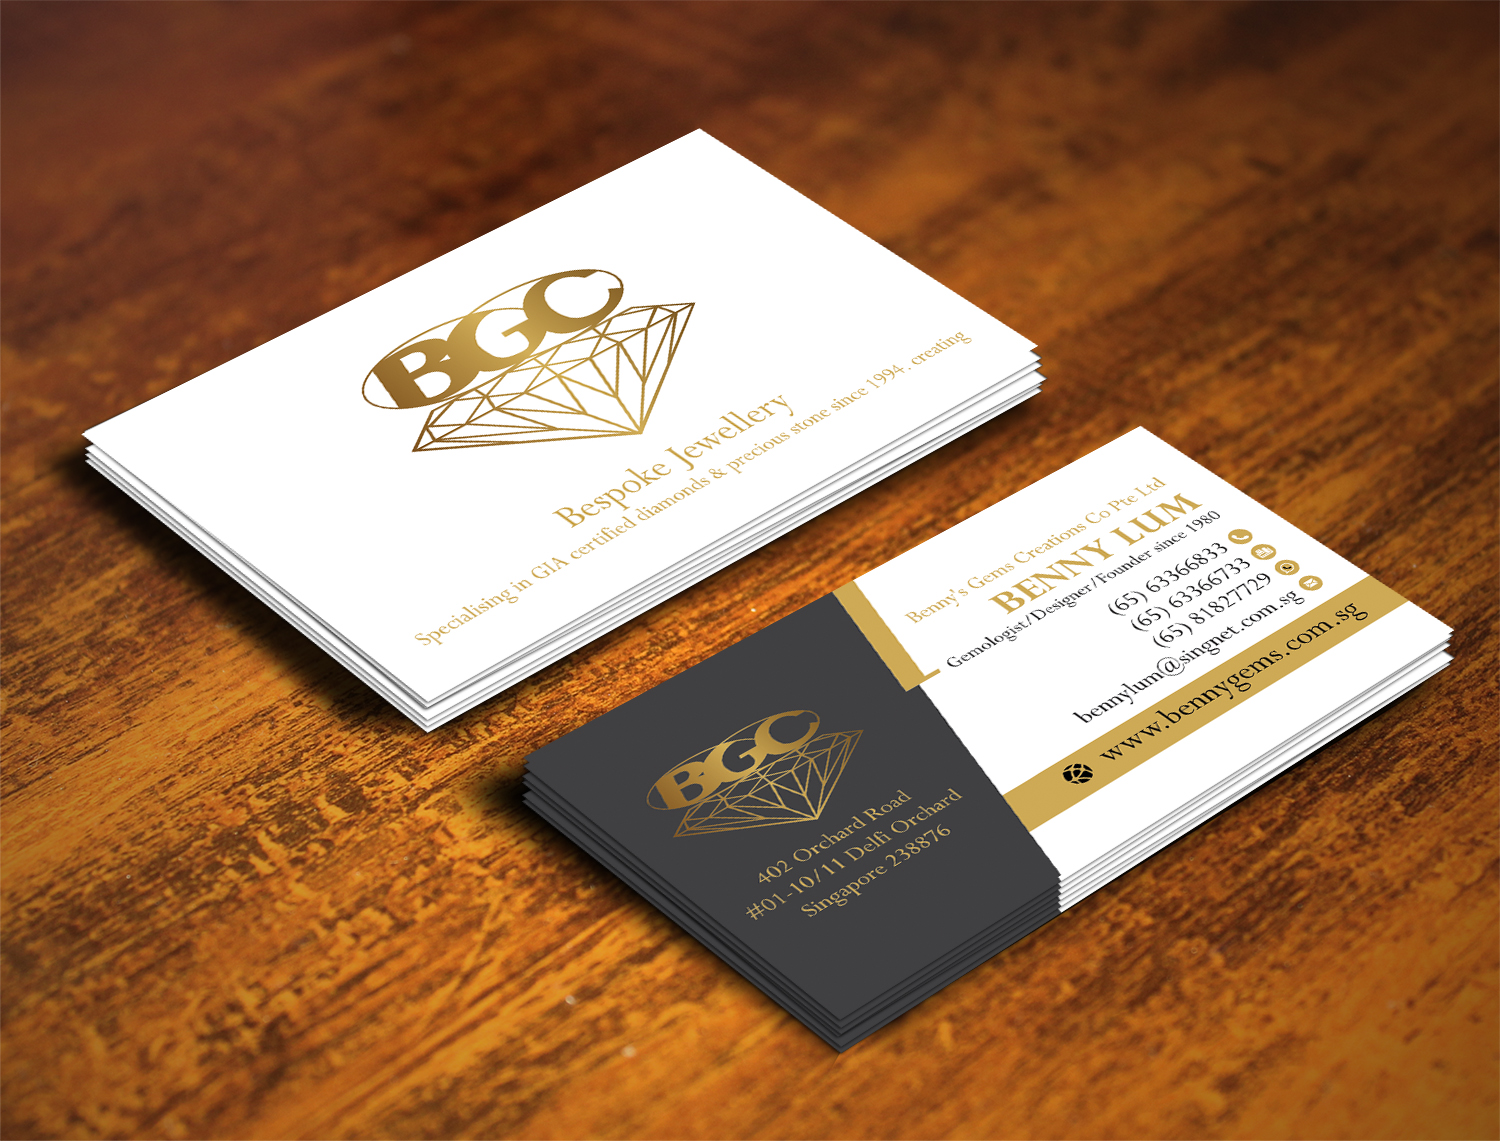 Professional upmarket jewelry store business card design for a business card design by alhemique1 for this project design 12678082 reheart